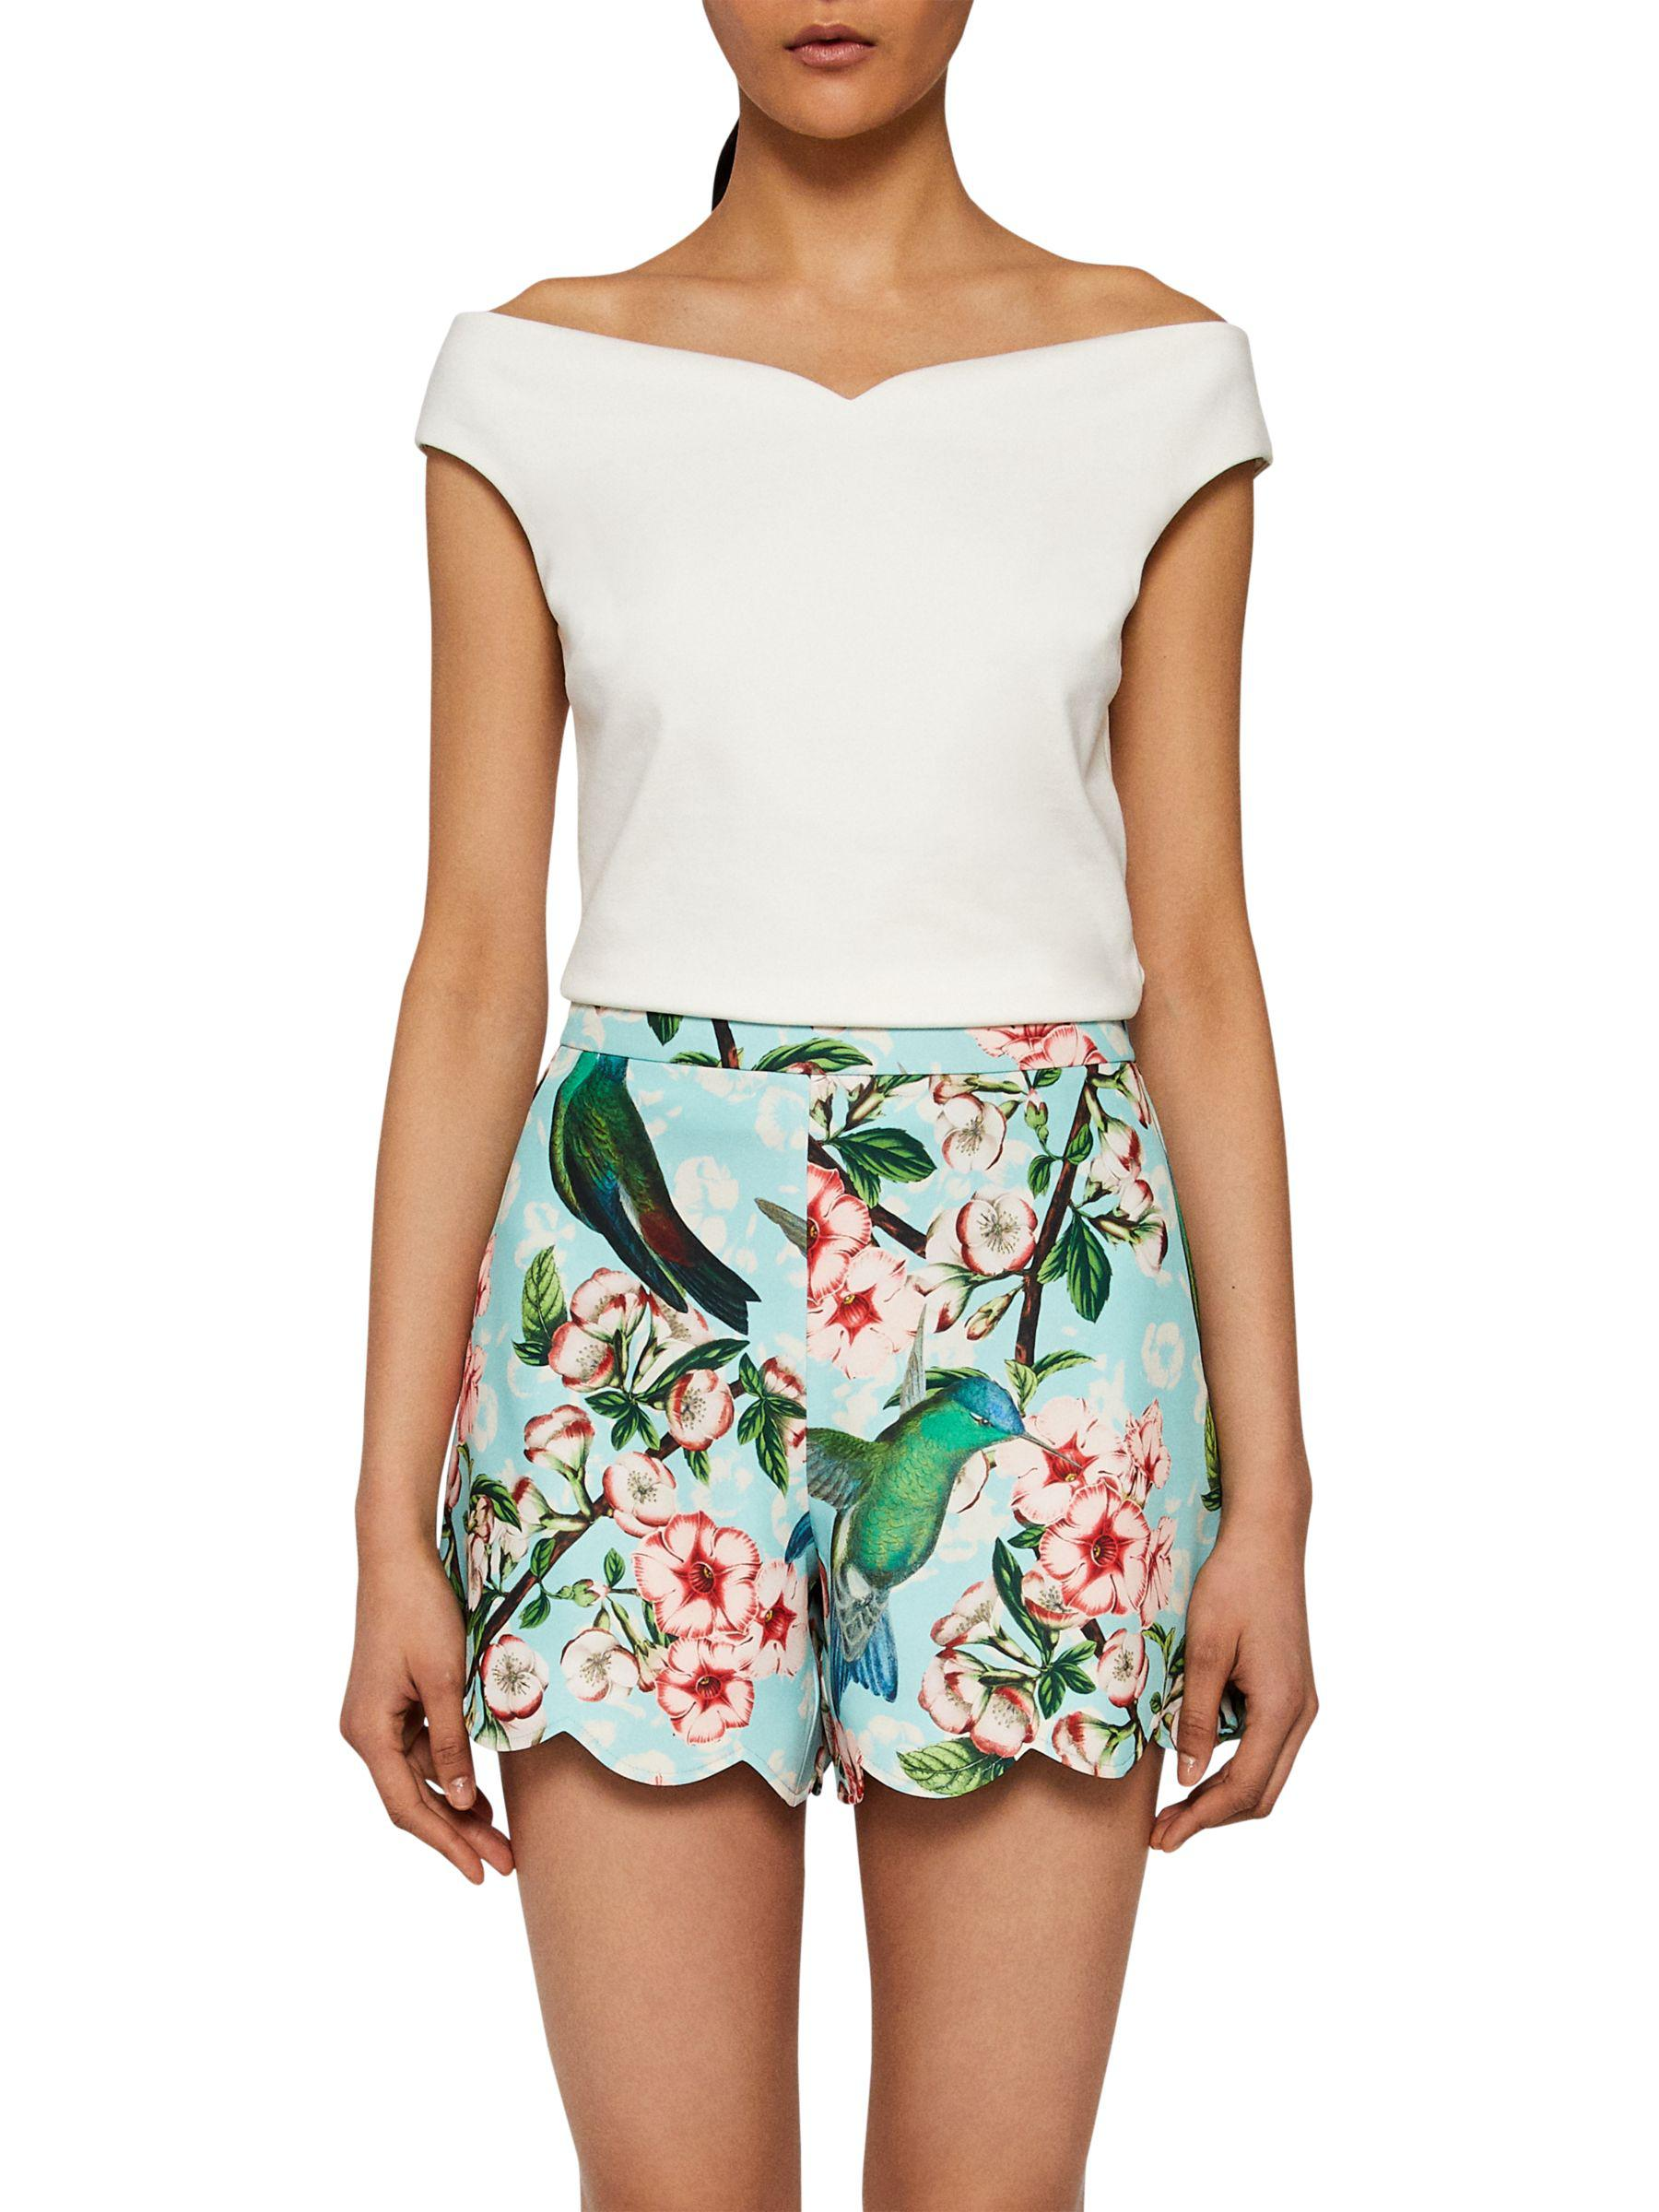 Baker Print In Scalloped Lyst Ted Shorts Green Nectar Fura dtcYWpwpqT